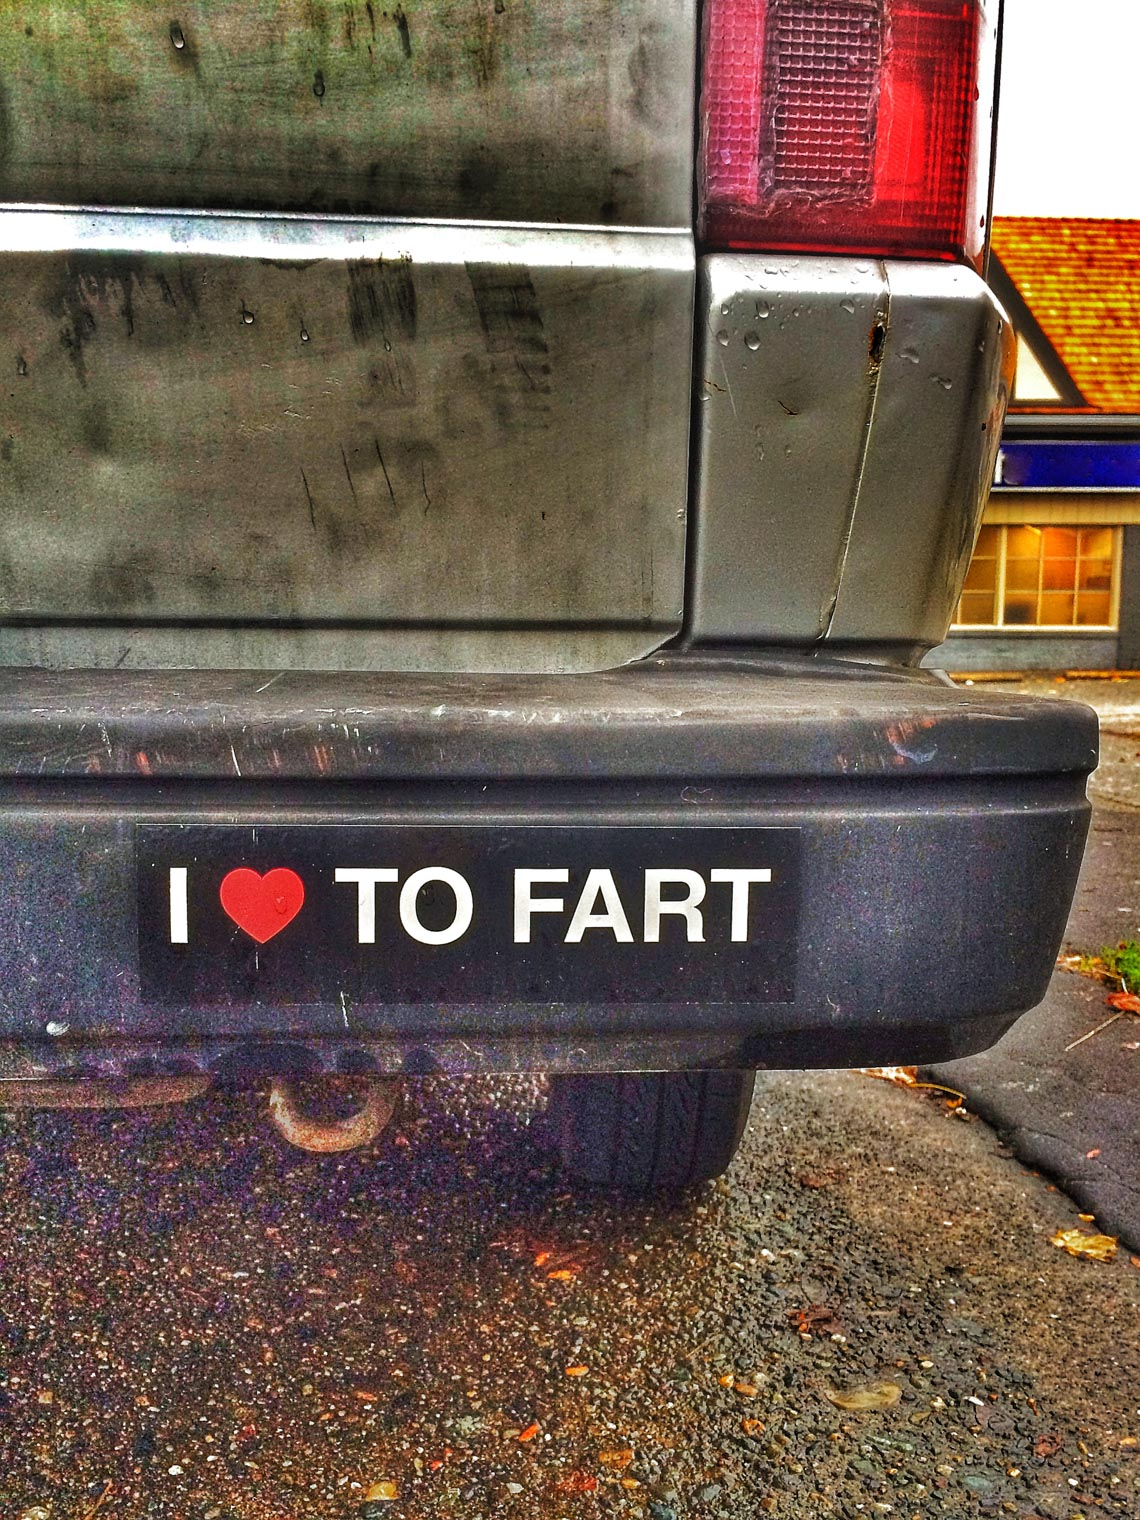 """I love to fart"" bumber sticker on the back of a dirty car."